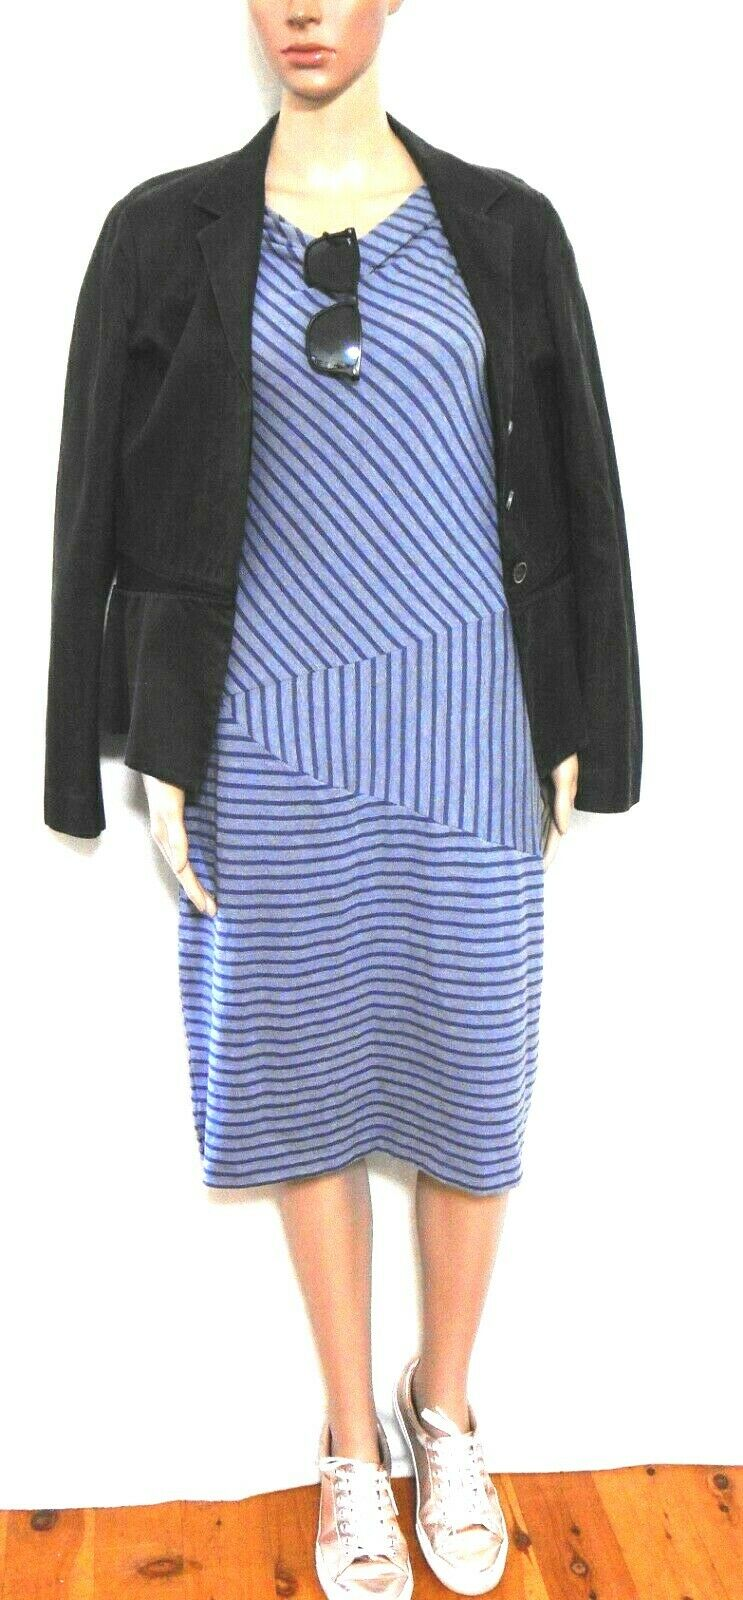 Mesop stretch dress, dark blue striped, sz. 14 - near new, for all seasons